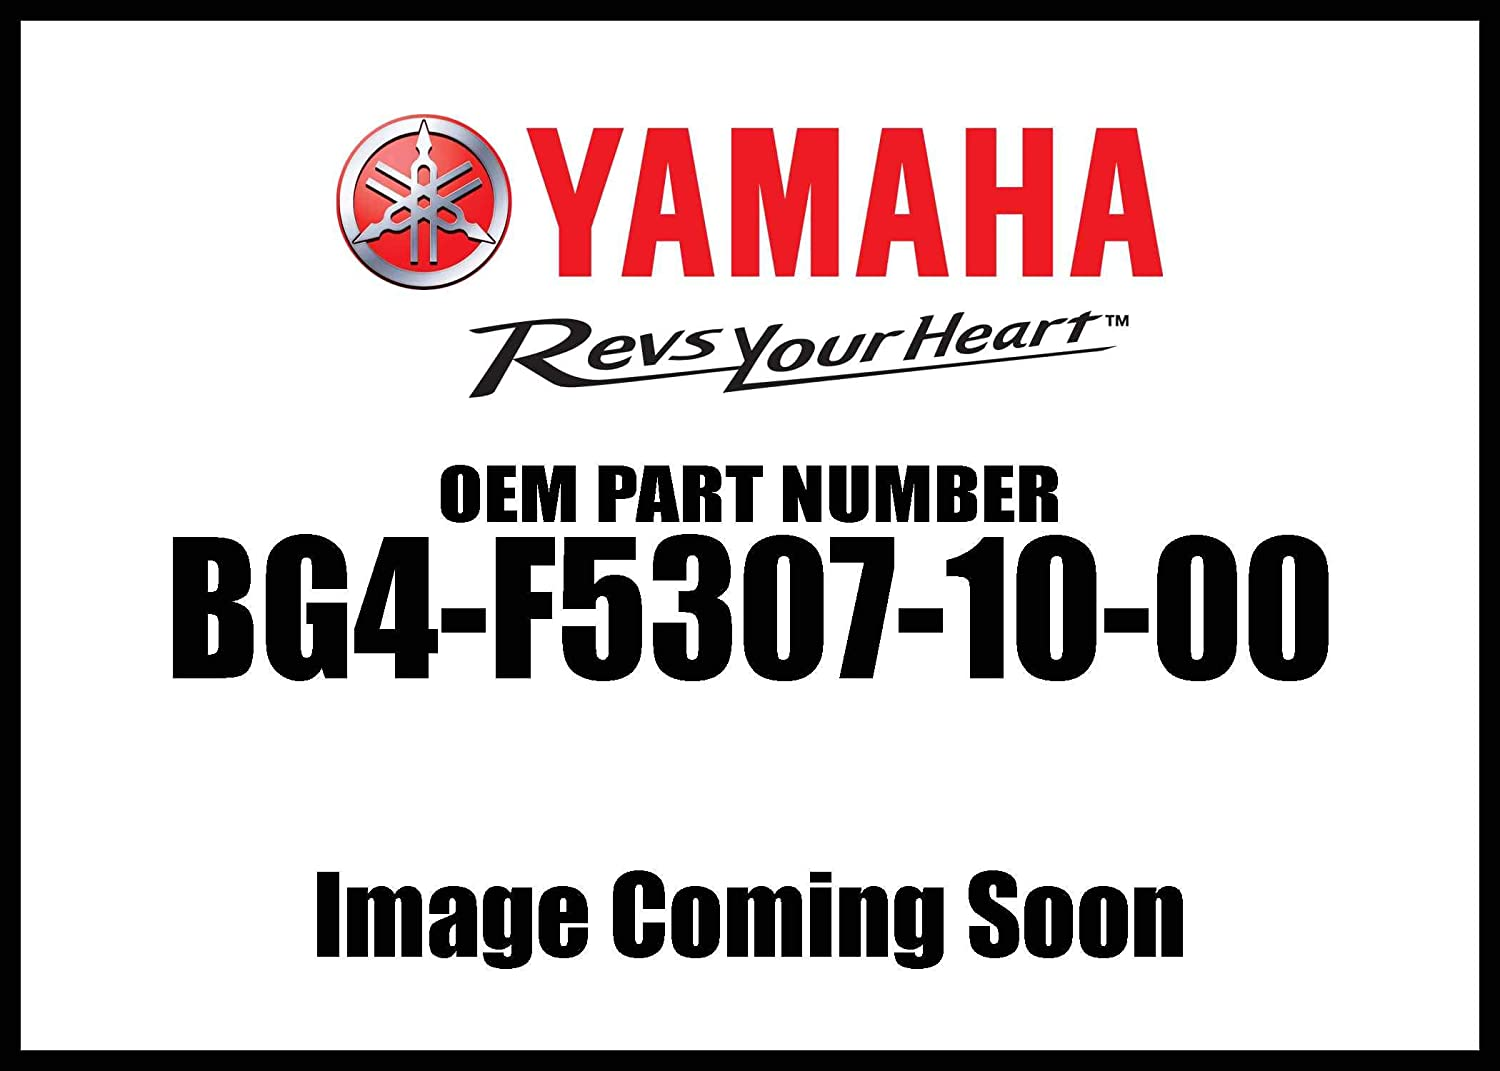 Yamaha OFFicial shop Cast Wheel Rear Oem New Complete Free Shipping Bg4-F5307-10-00